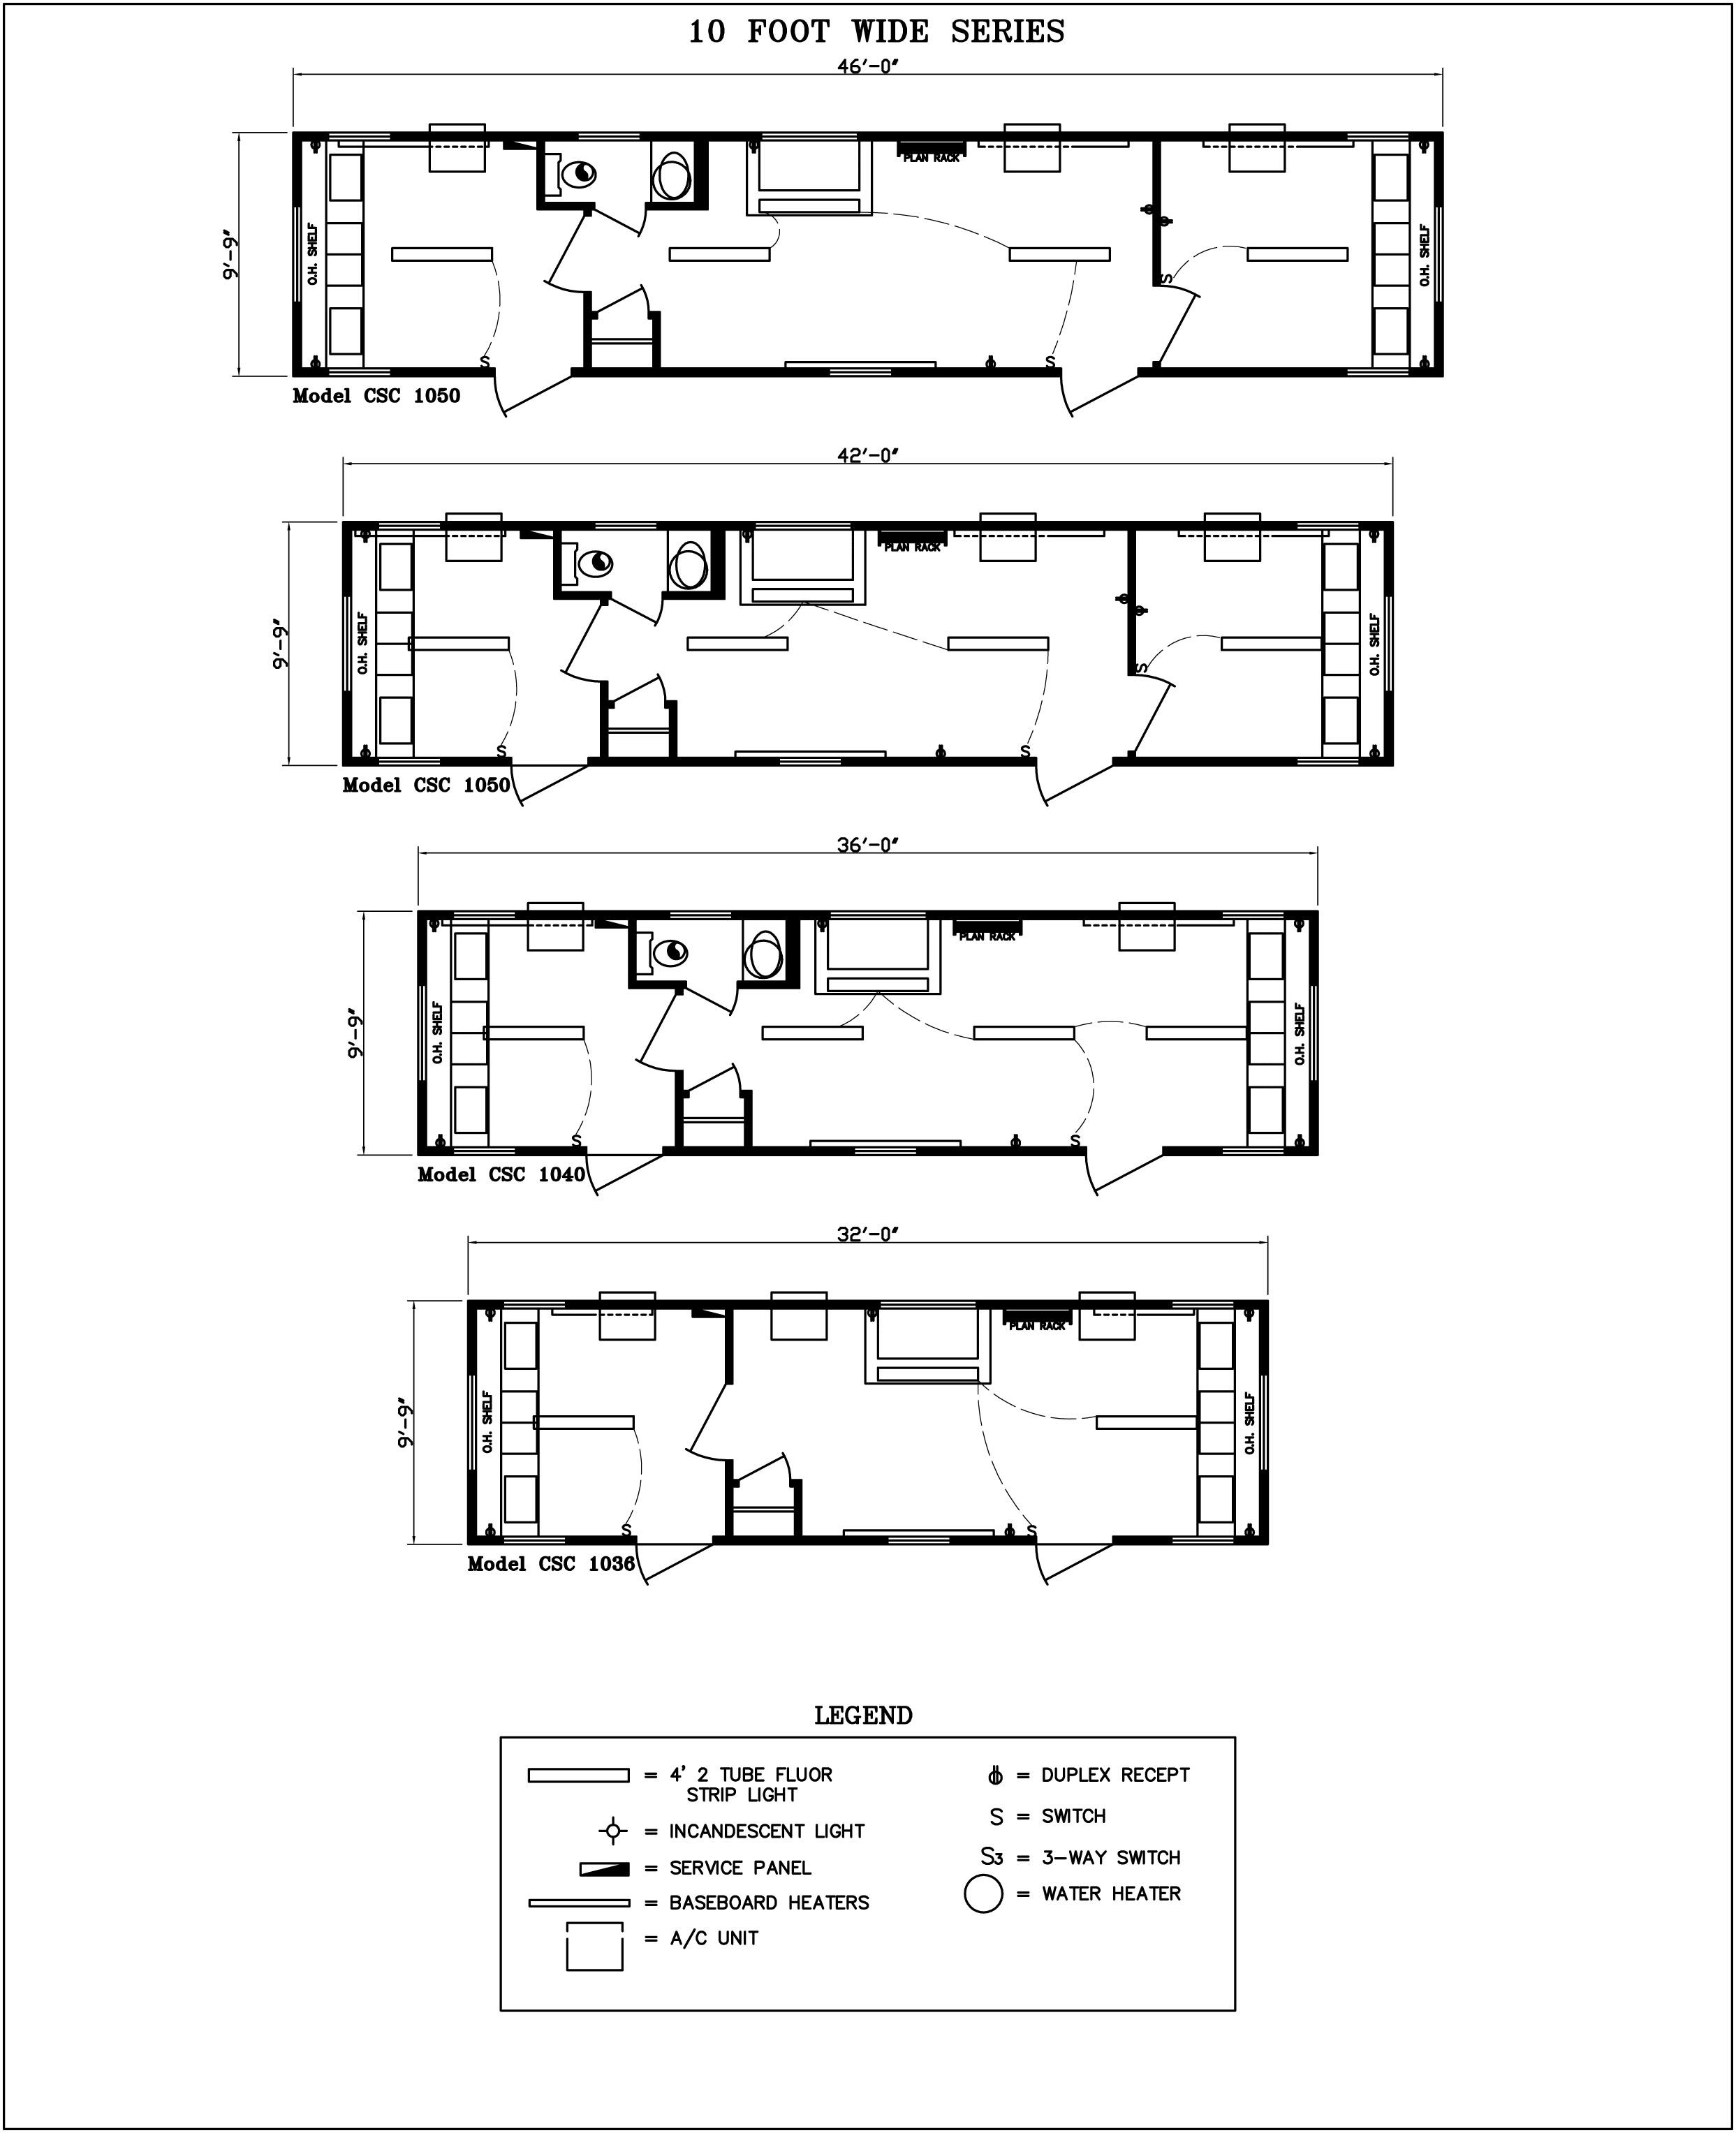 Modular Building Floor Plans - Commercial Structures Corp.